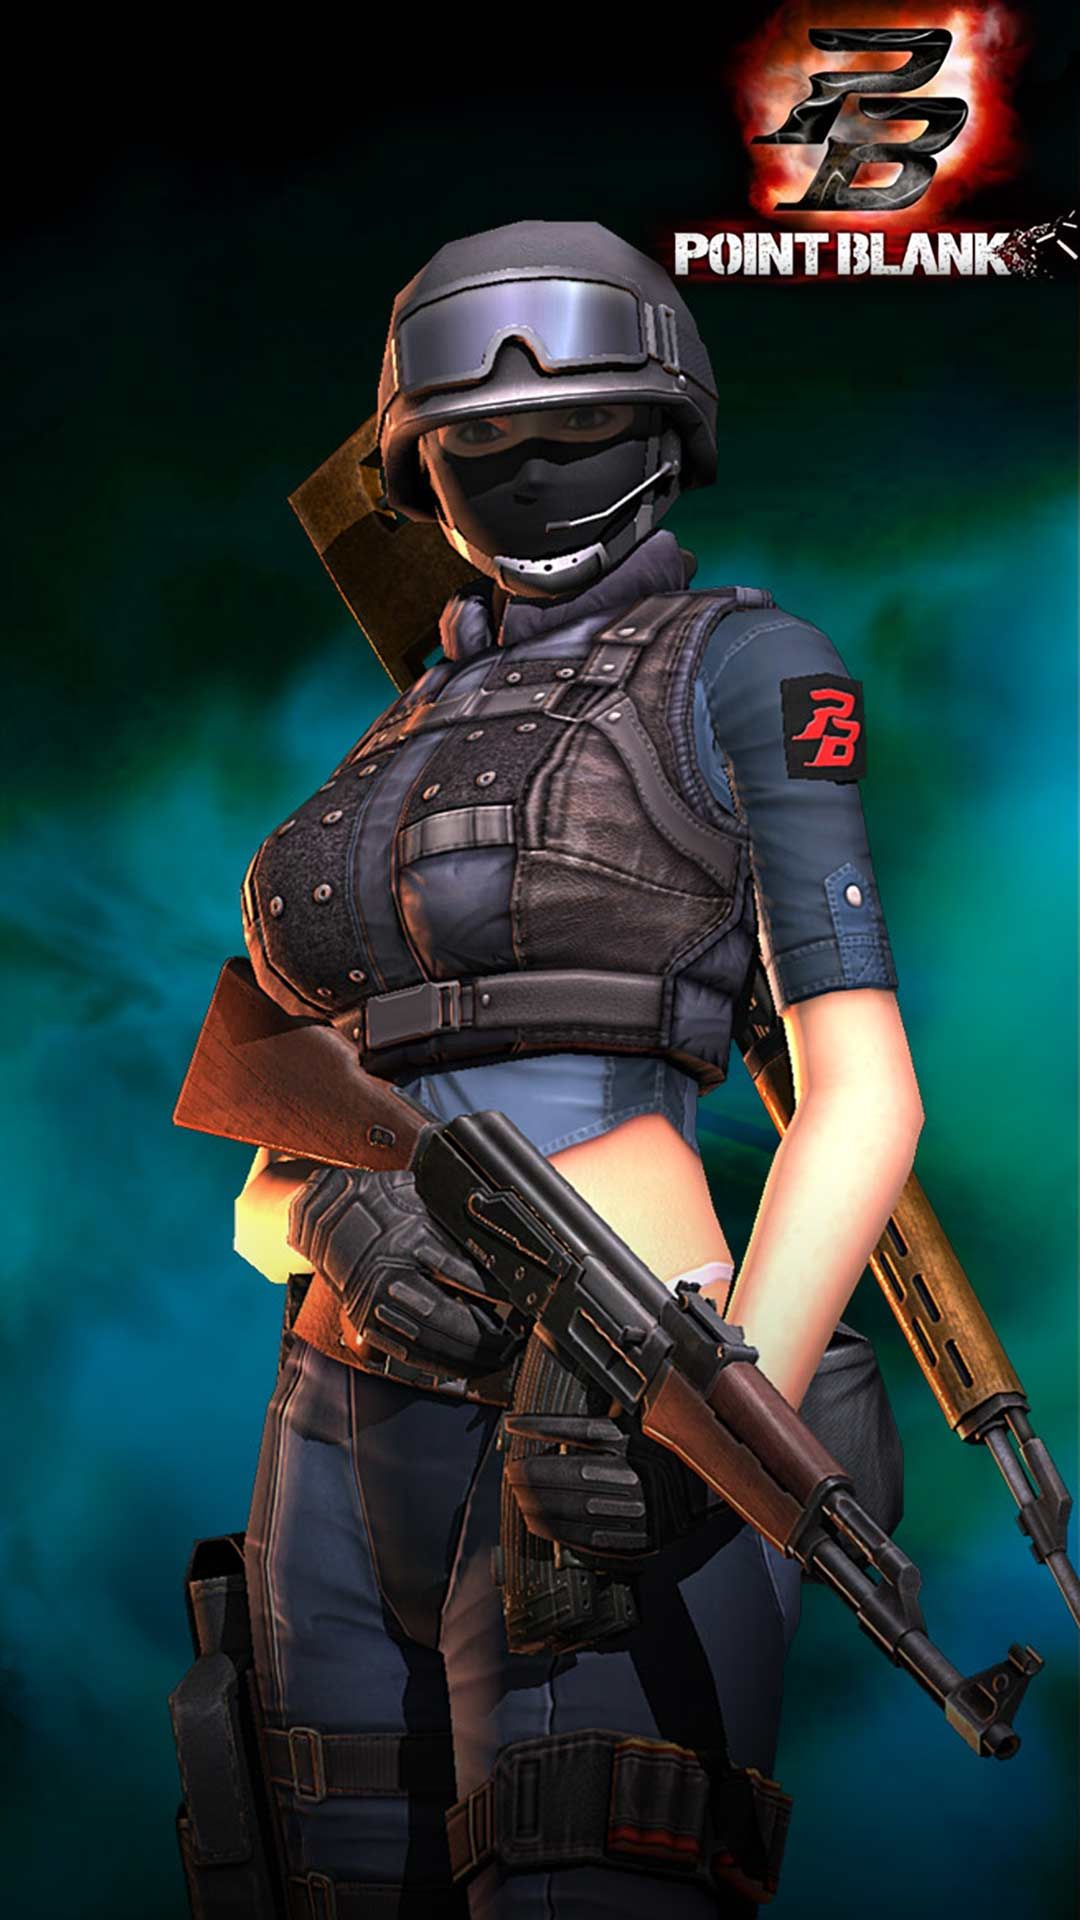 Point Blank Wallpaper Phone Backgrounds For Free Download In 2020